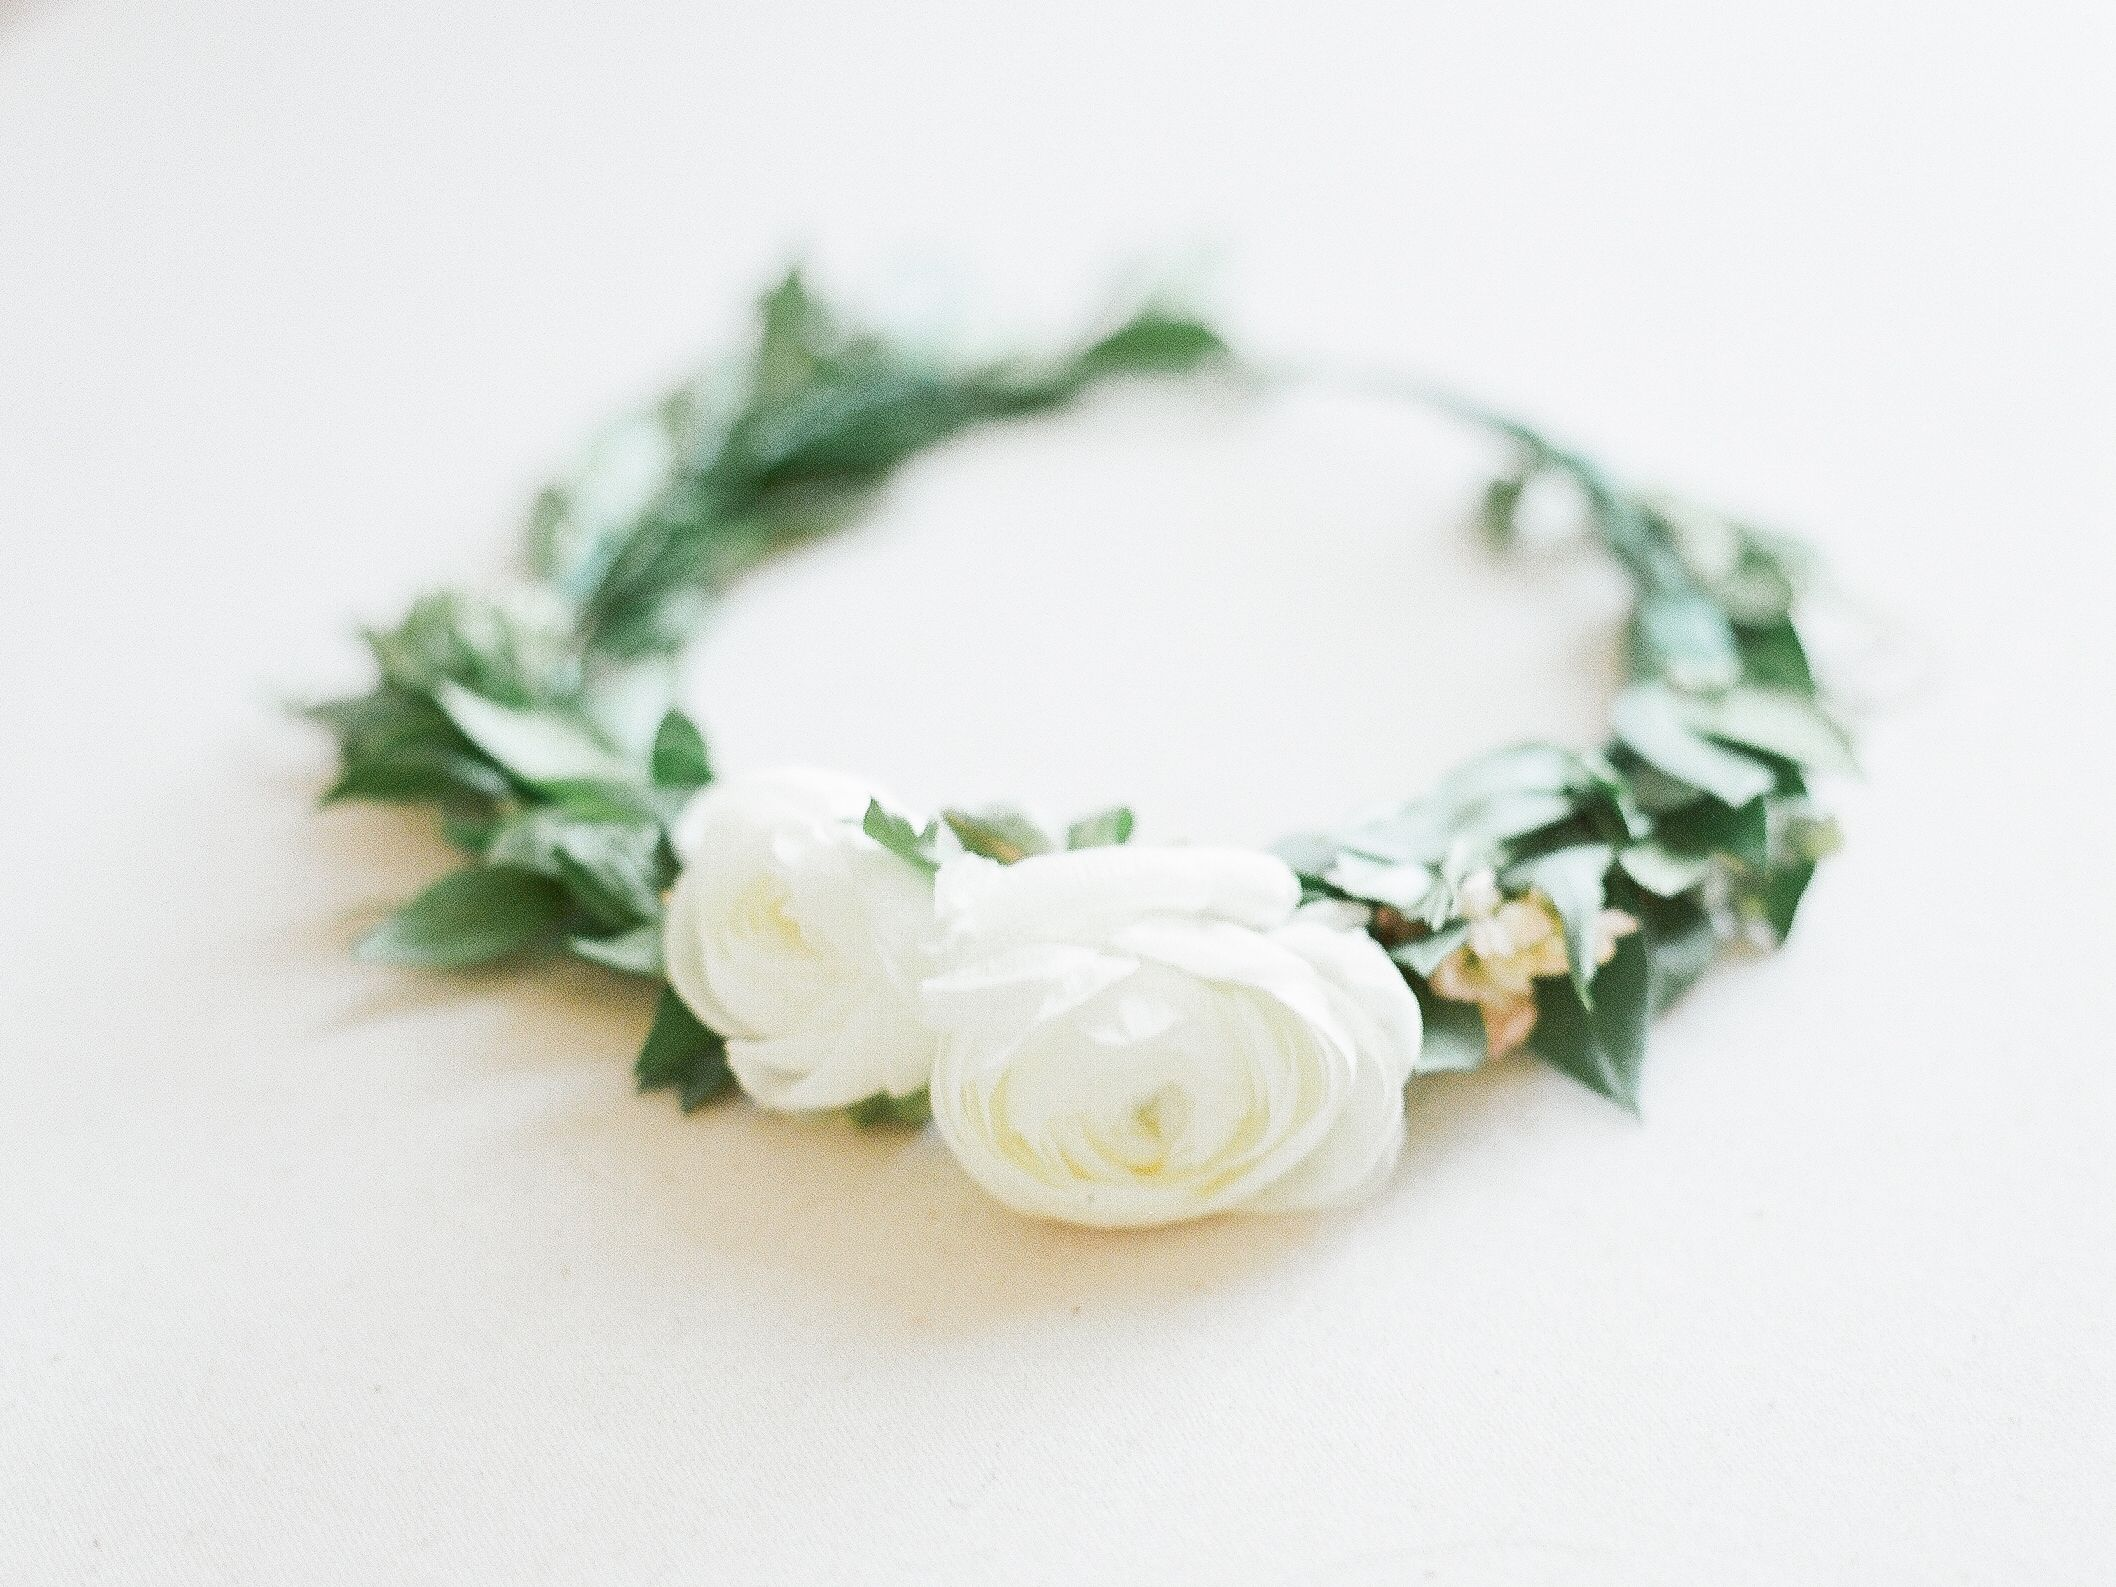 Petite Floral Crown With Simple White Ranunculus Flowers And Greenery For A Sweet Flowergirl Or A Minimali Ranunculus Flowers White Ranunculus Minimalist Bride